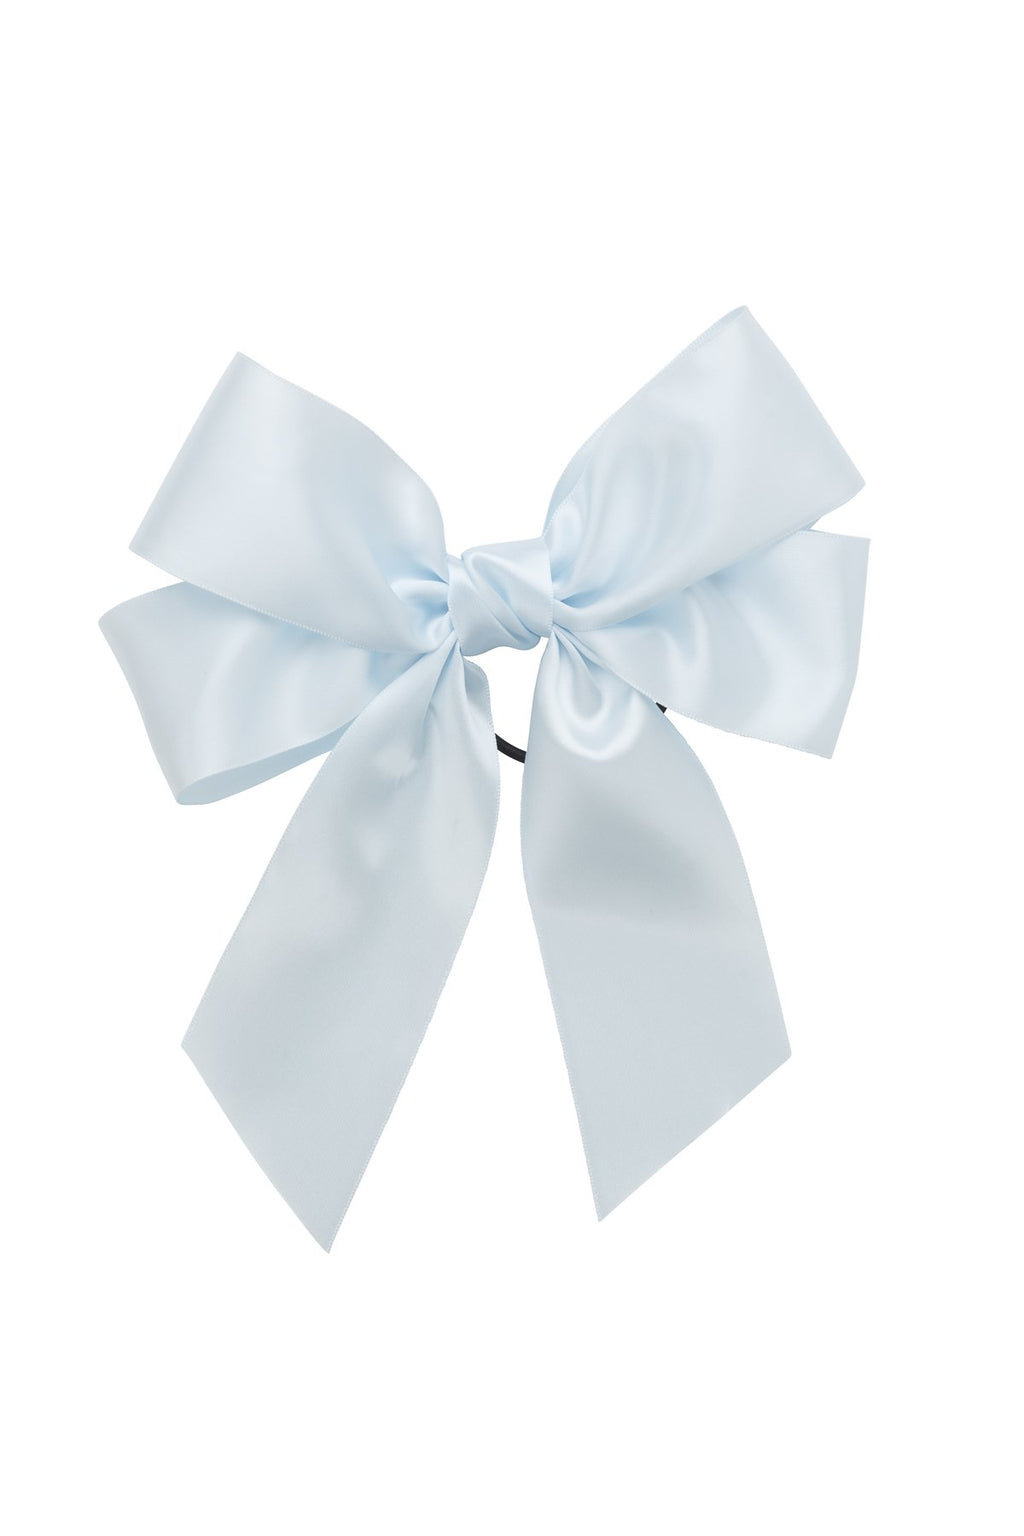 Oversized Bow Pony/Clip - Blue Vapor - PROJECT 6, modest fashion